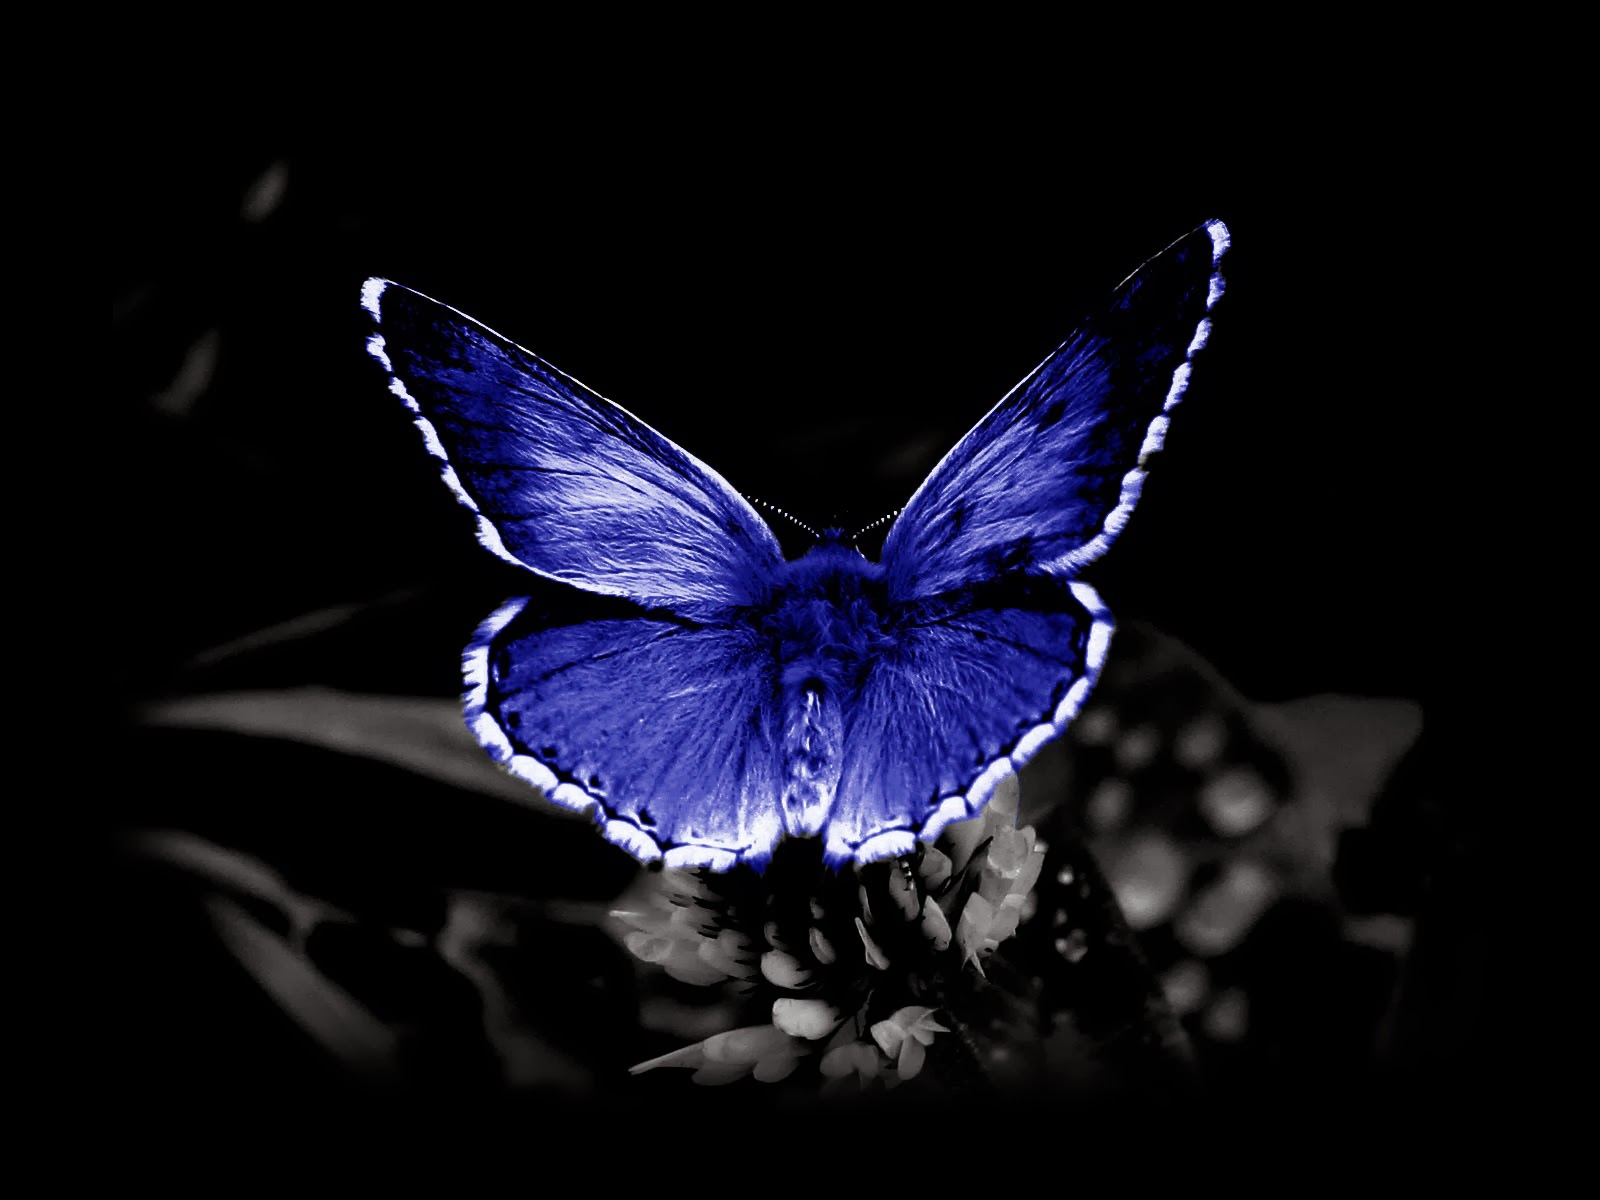 Butterflies Wallpapers Hd Download: Wallpapers: Butterfly Desktop Backgrounds